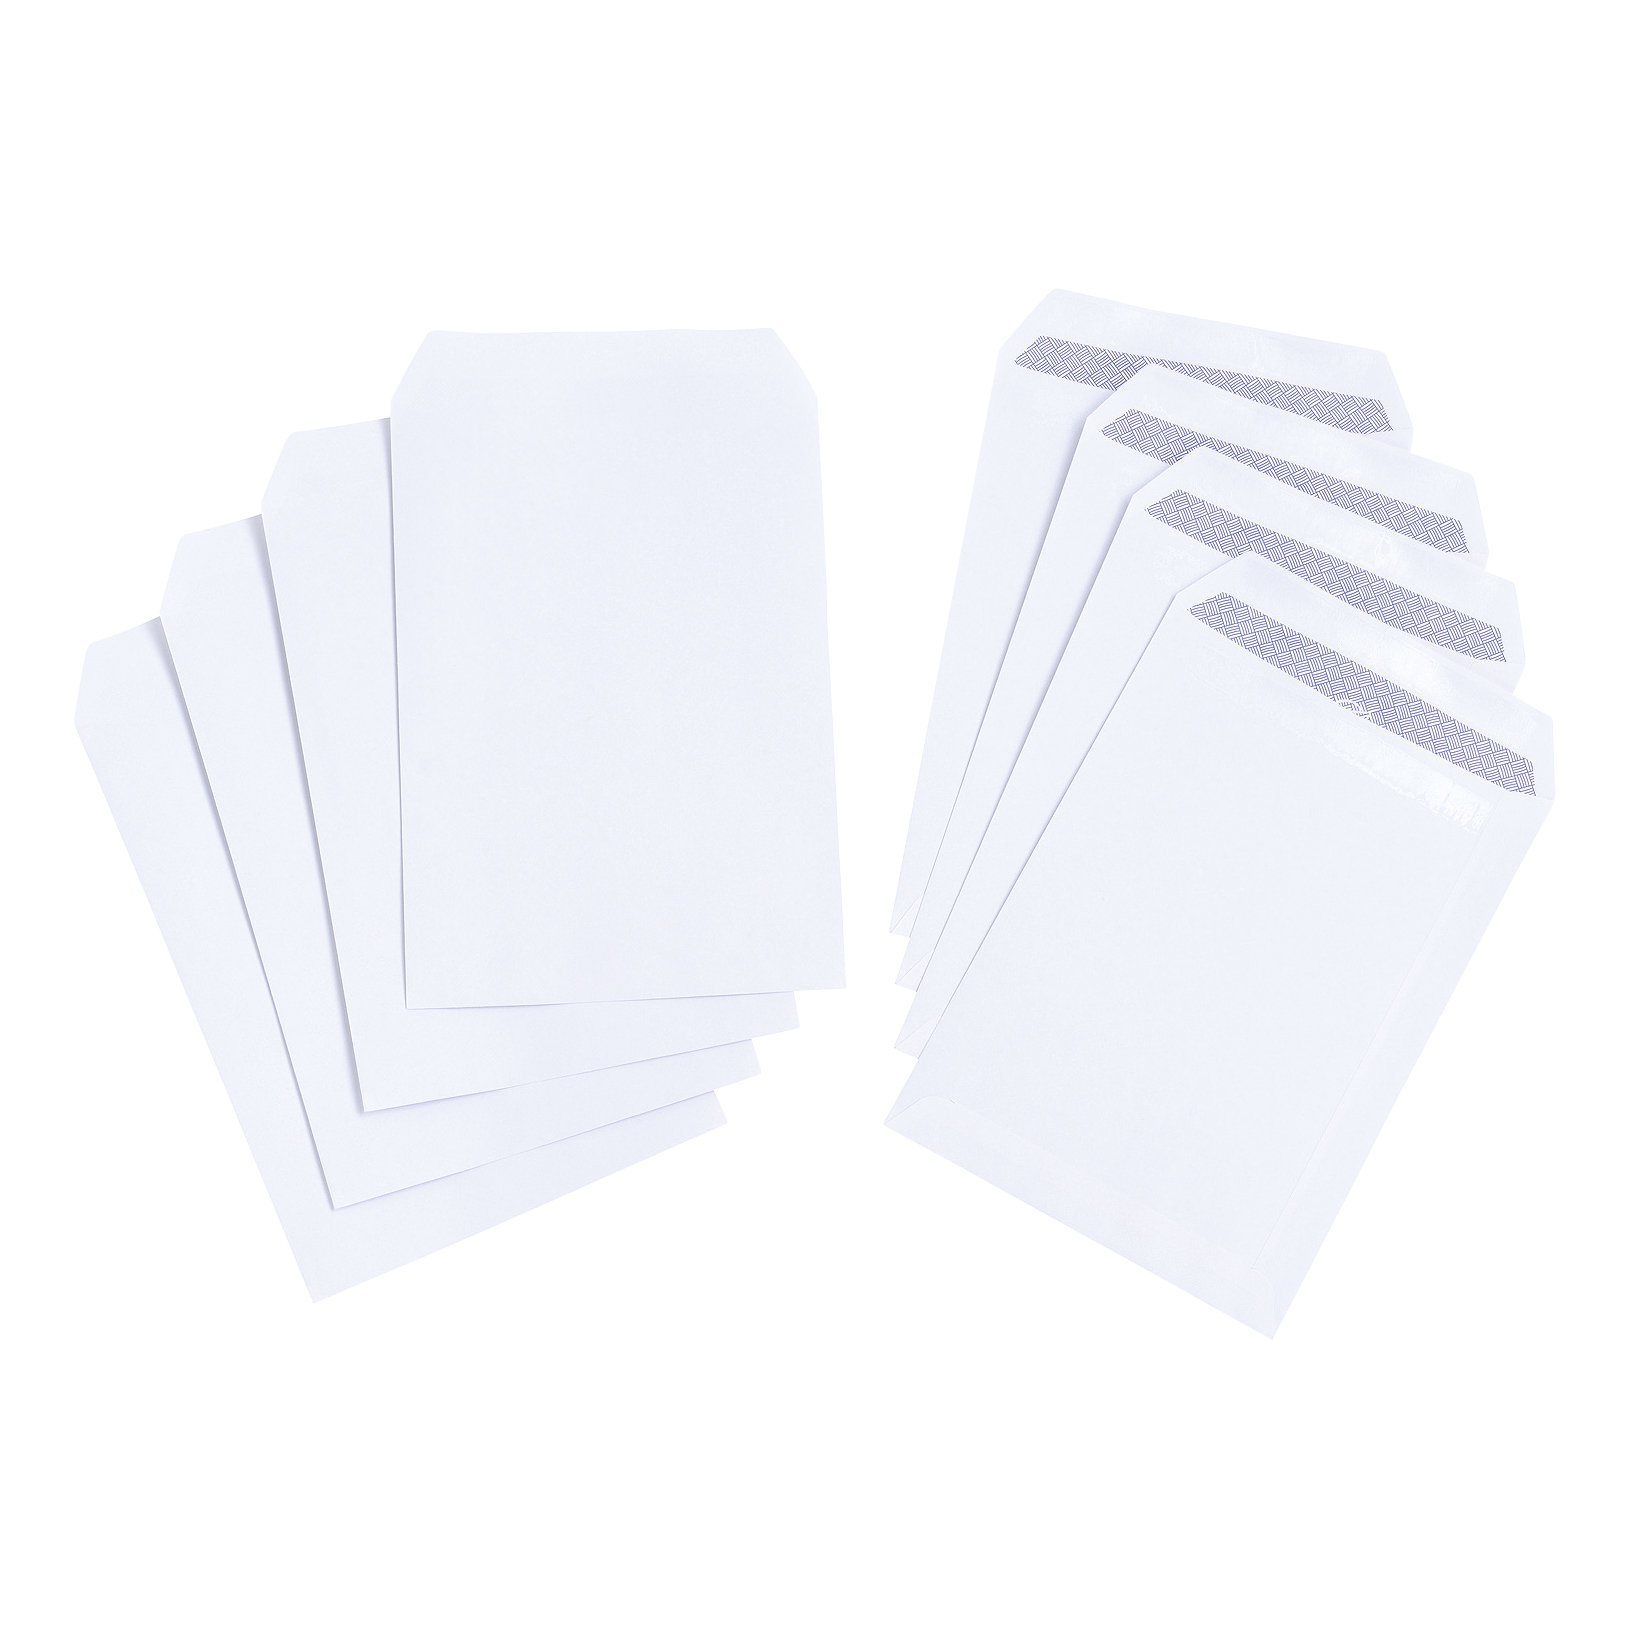 C5 5 Star Value Envelope C5 Pocket Self Seal 100gsm White Pack 500